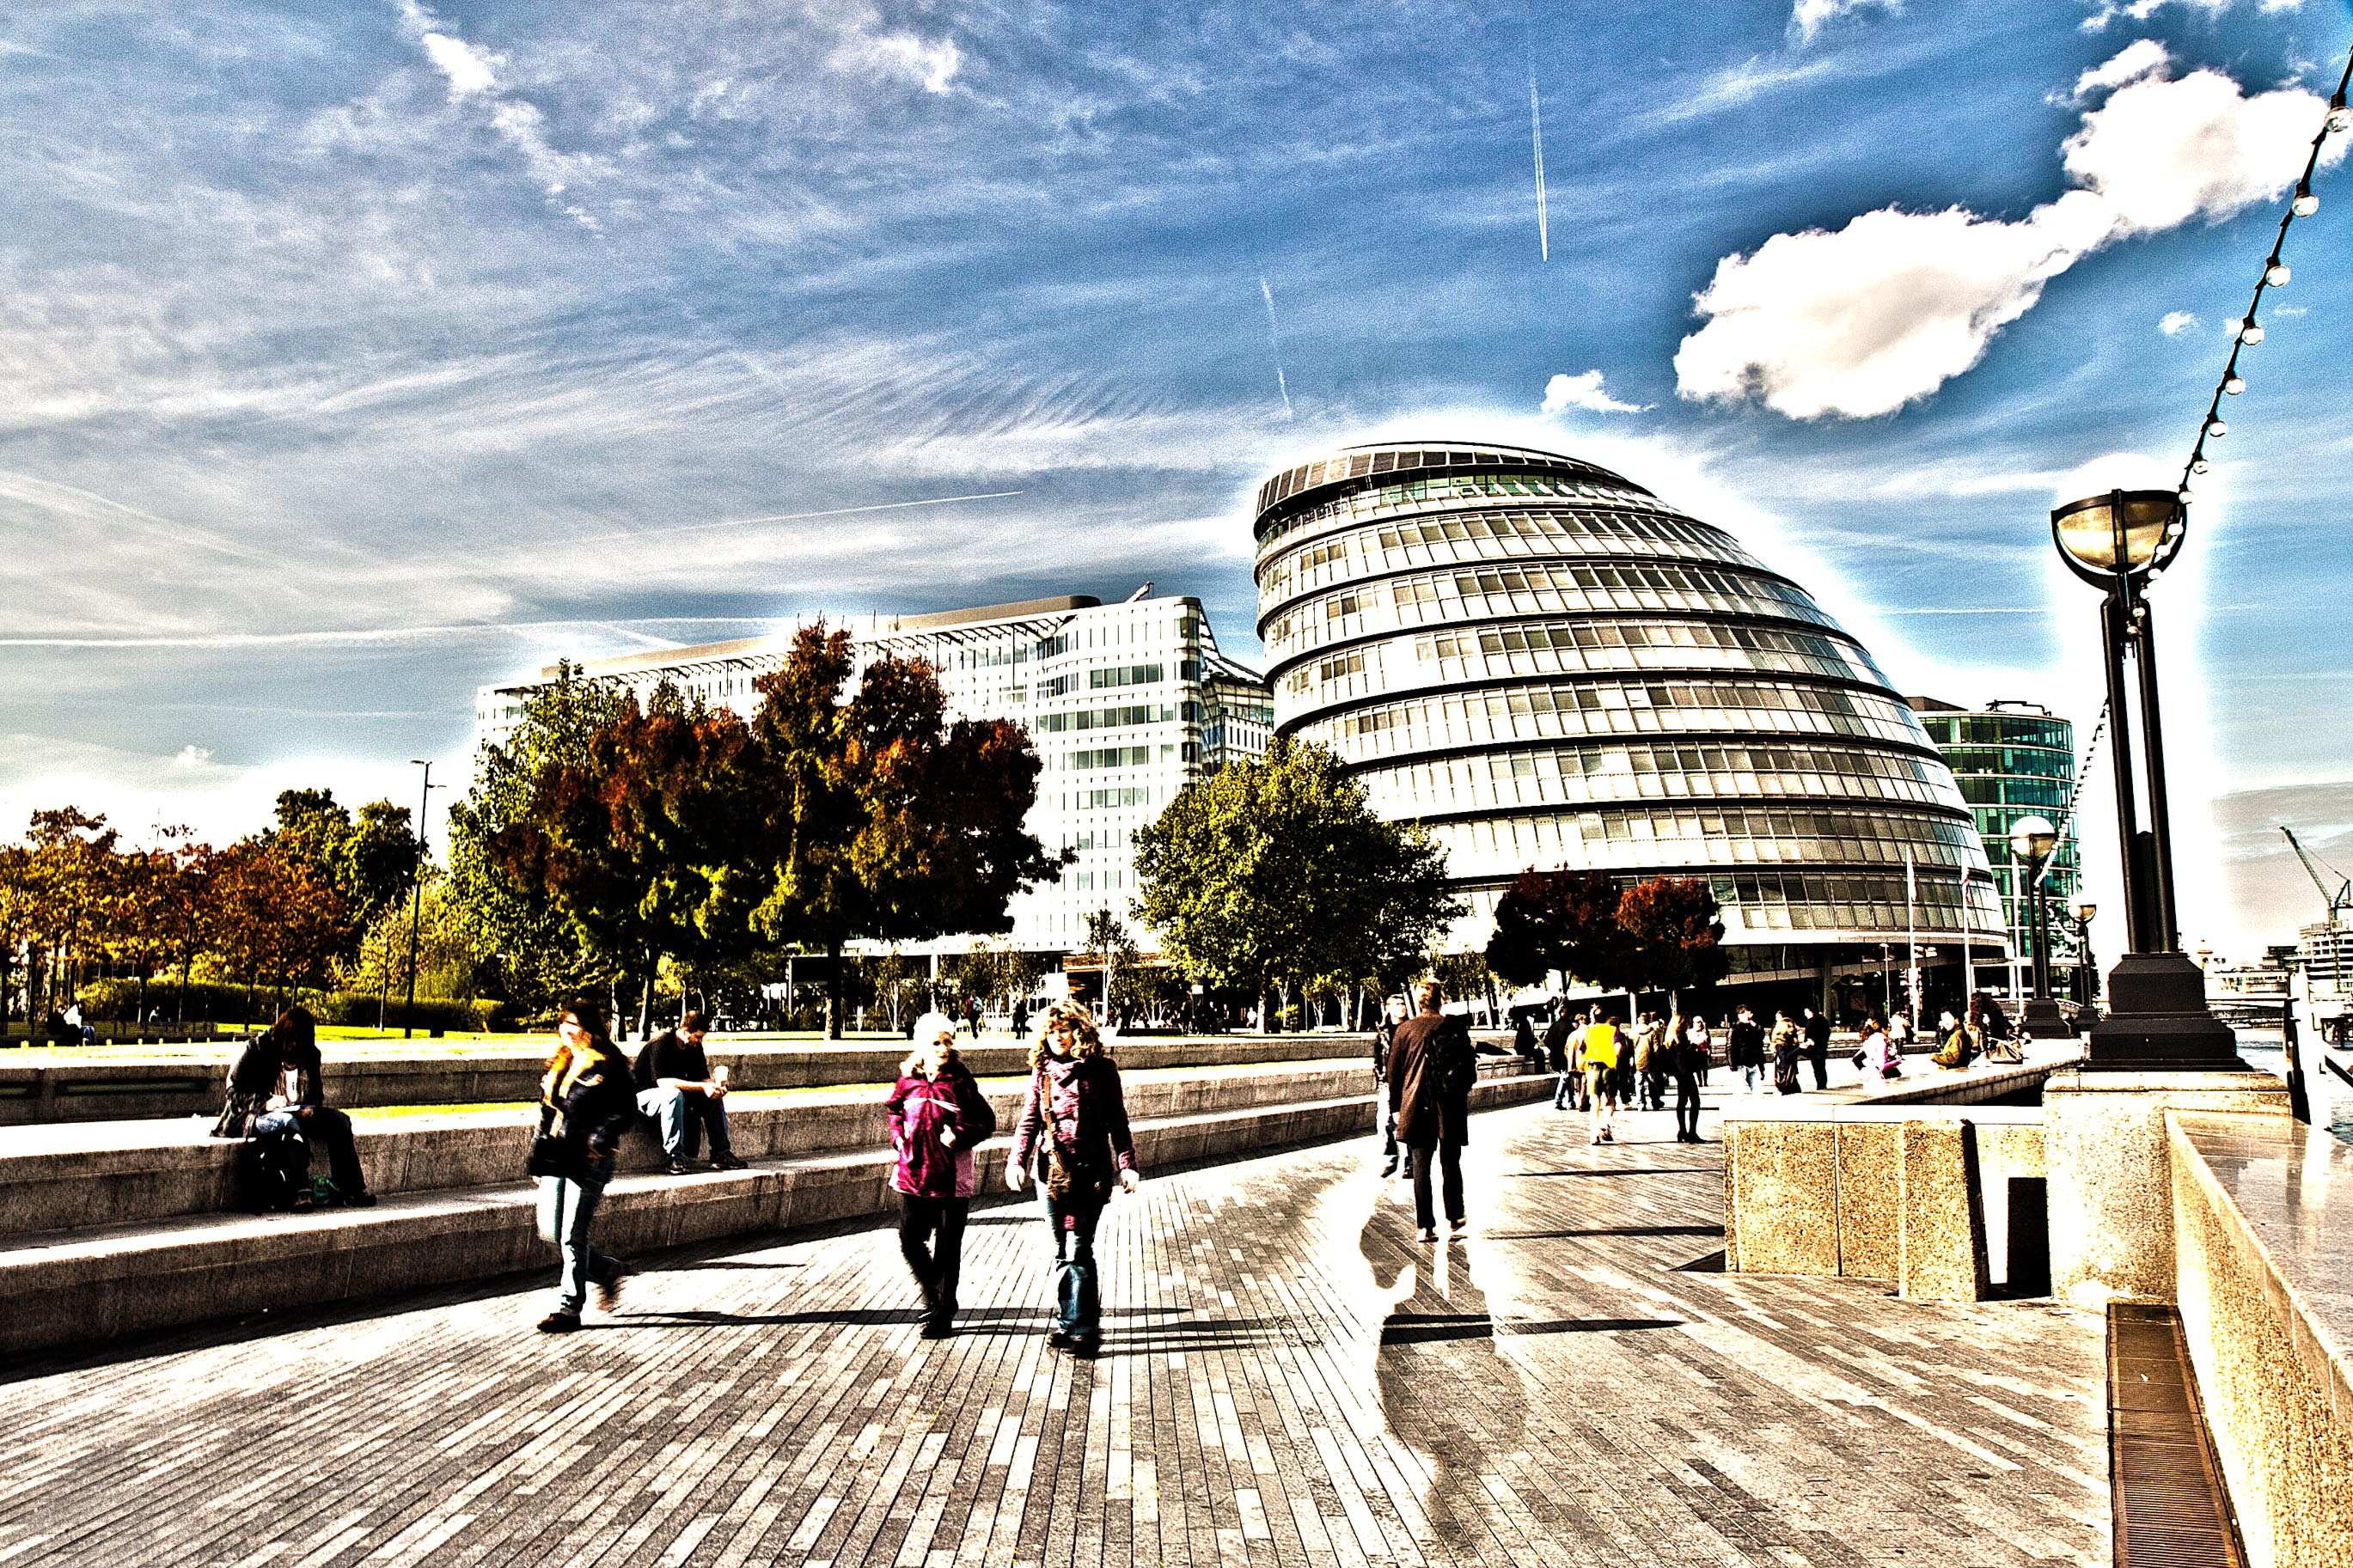 City Hall and Queen's Walk